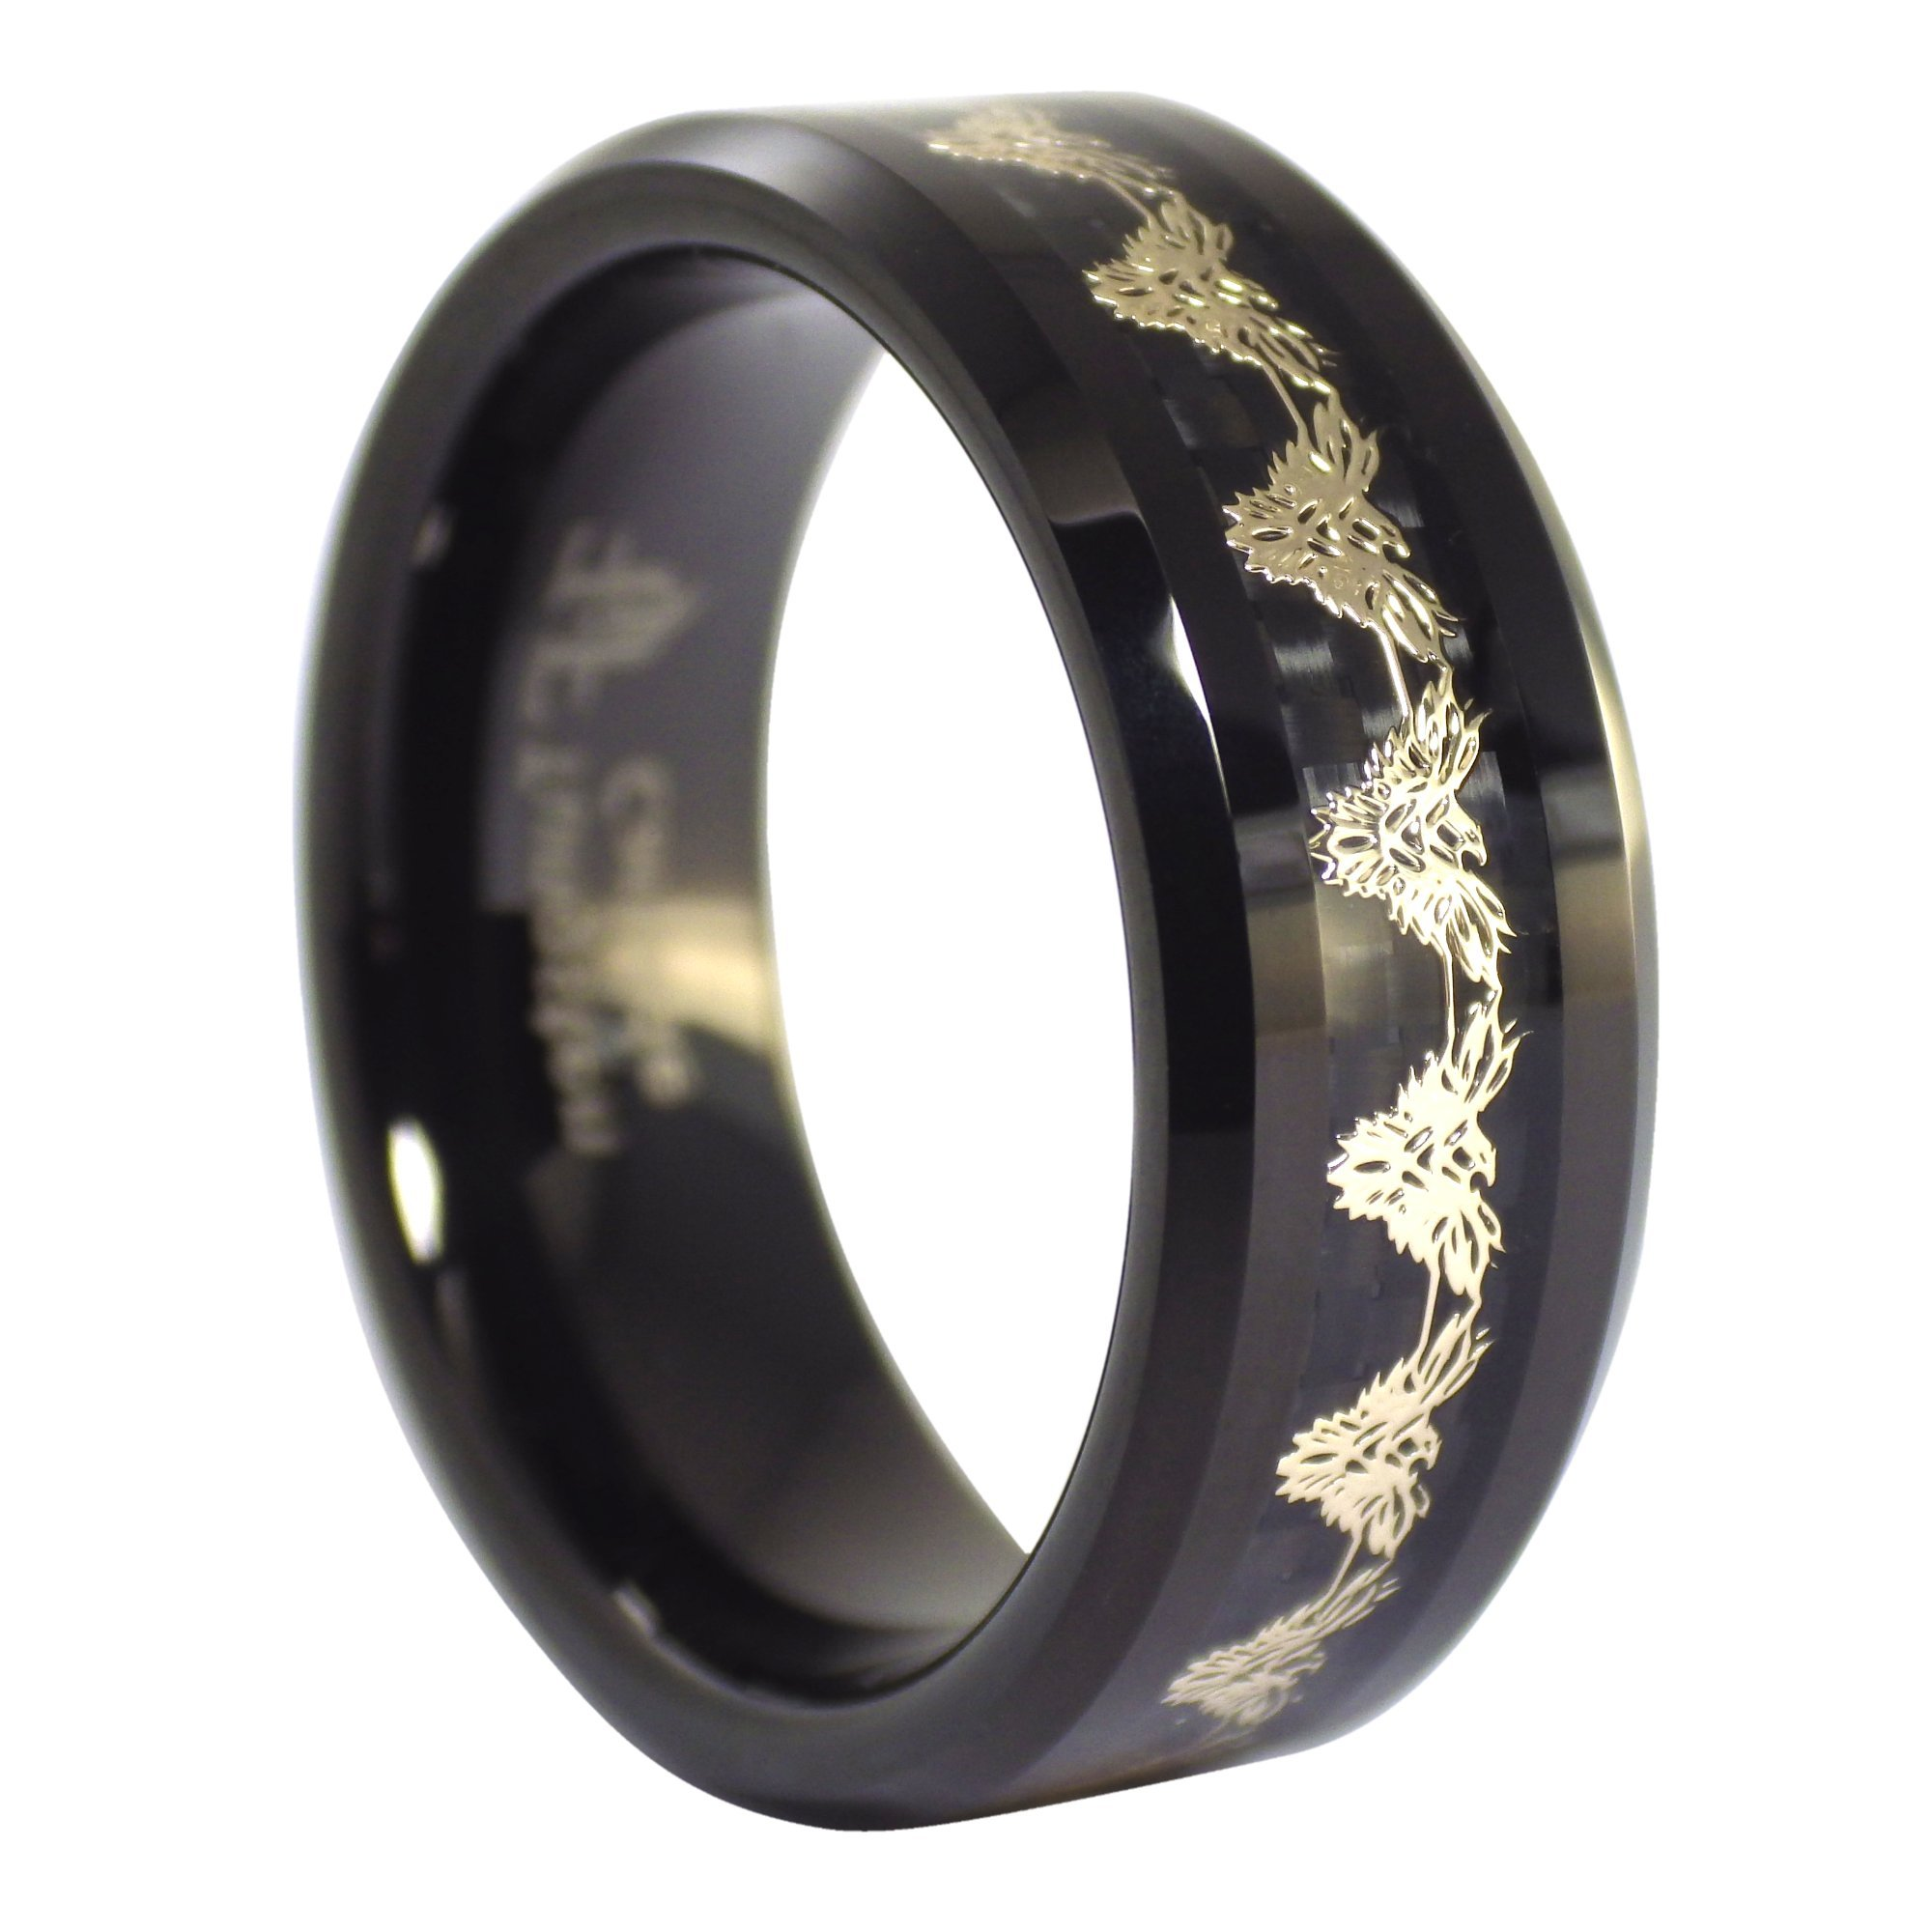 Fantasy Forge Jewelry Black Phoenix Gold Firebird Tungsten Ring 8mm Size 6.5 by Fantasy Forge Jewelry (Image #4)